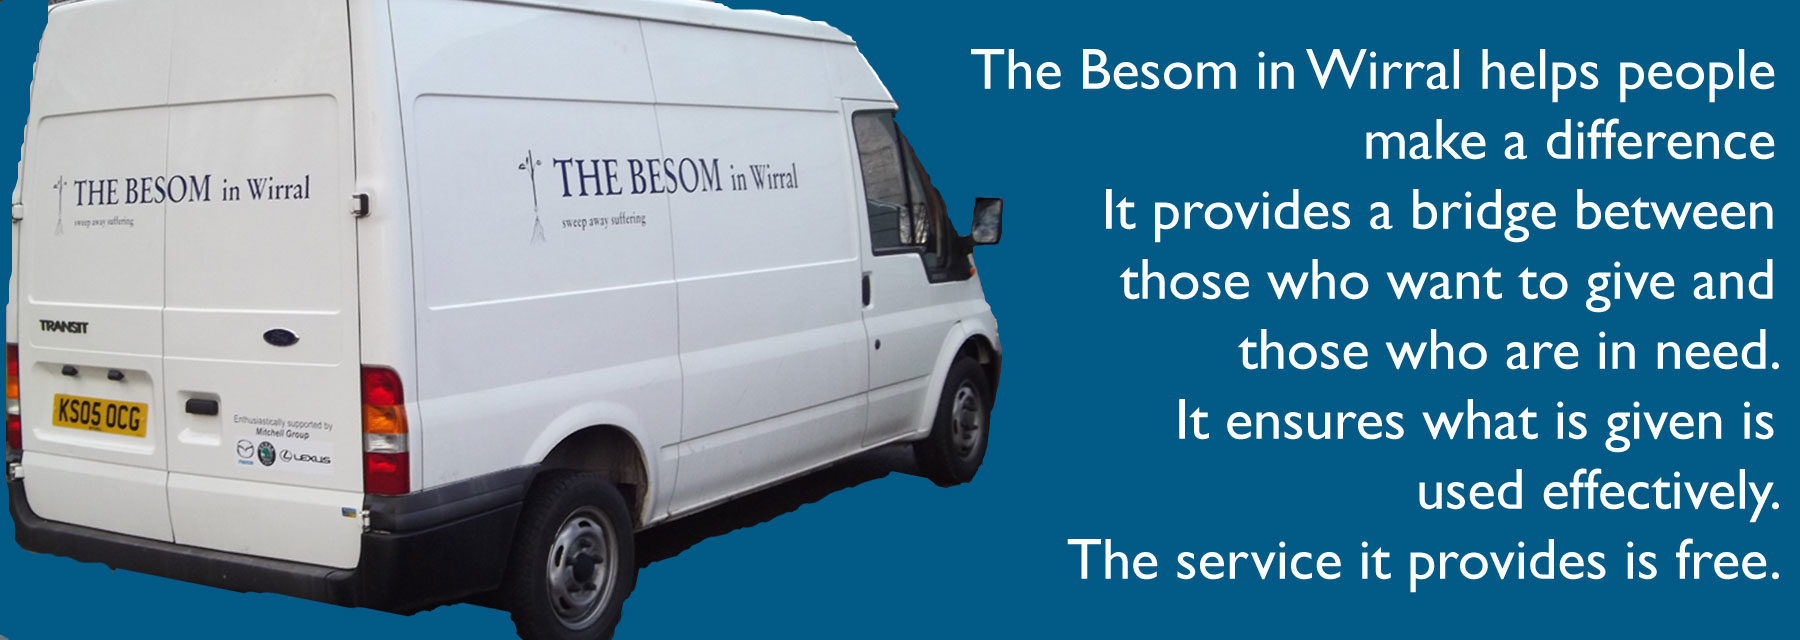 Besom in Wirral